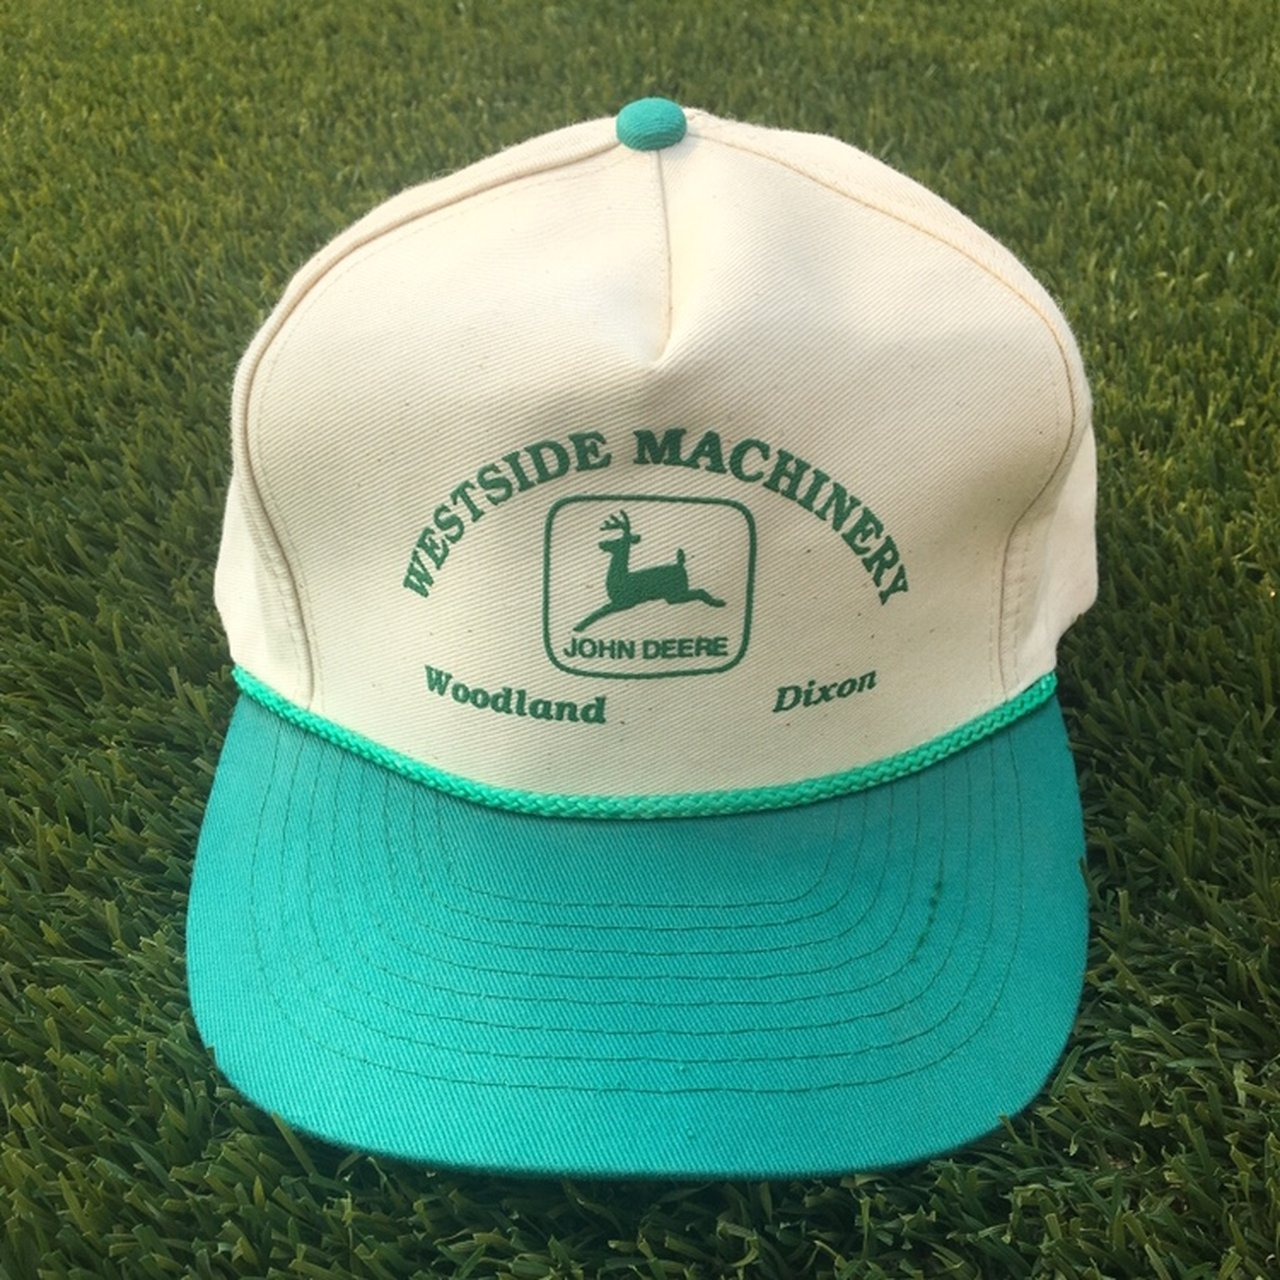 Vintage Two Tone John Deere SnapBack Hat. Super clean flaws! - Depop 8d69a189df90